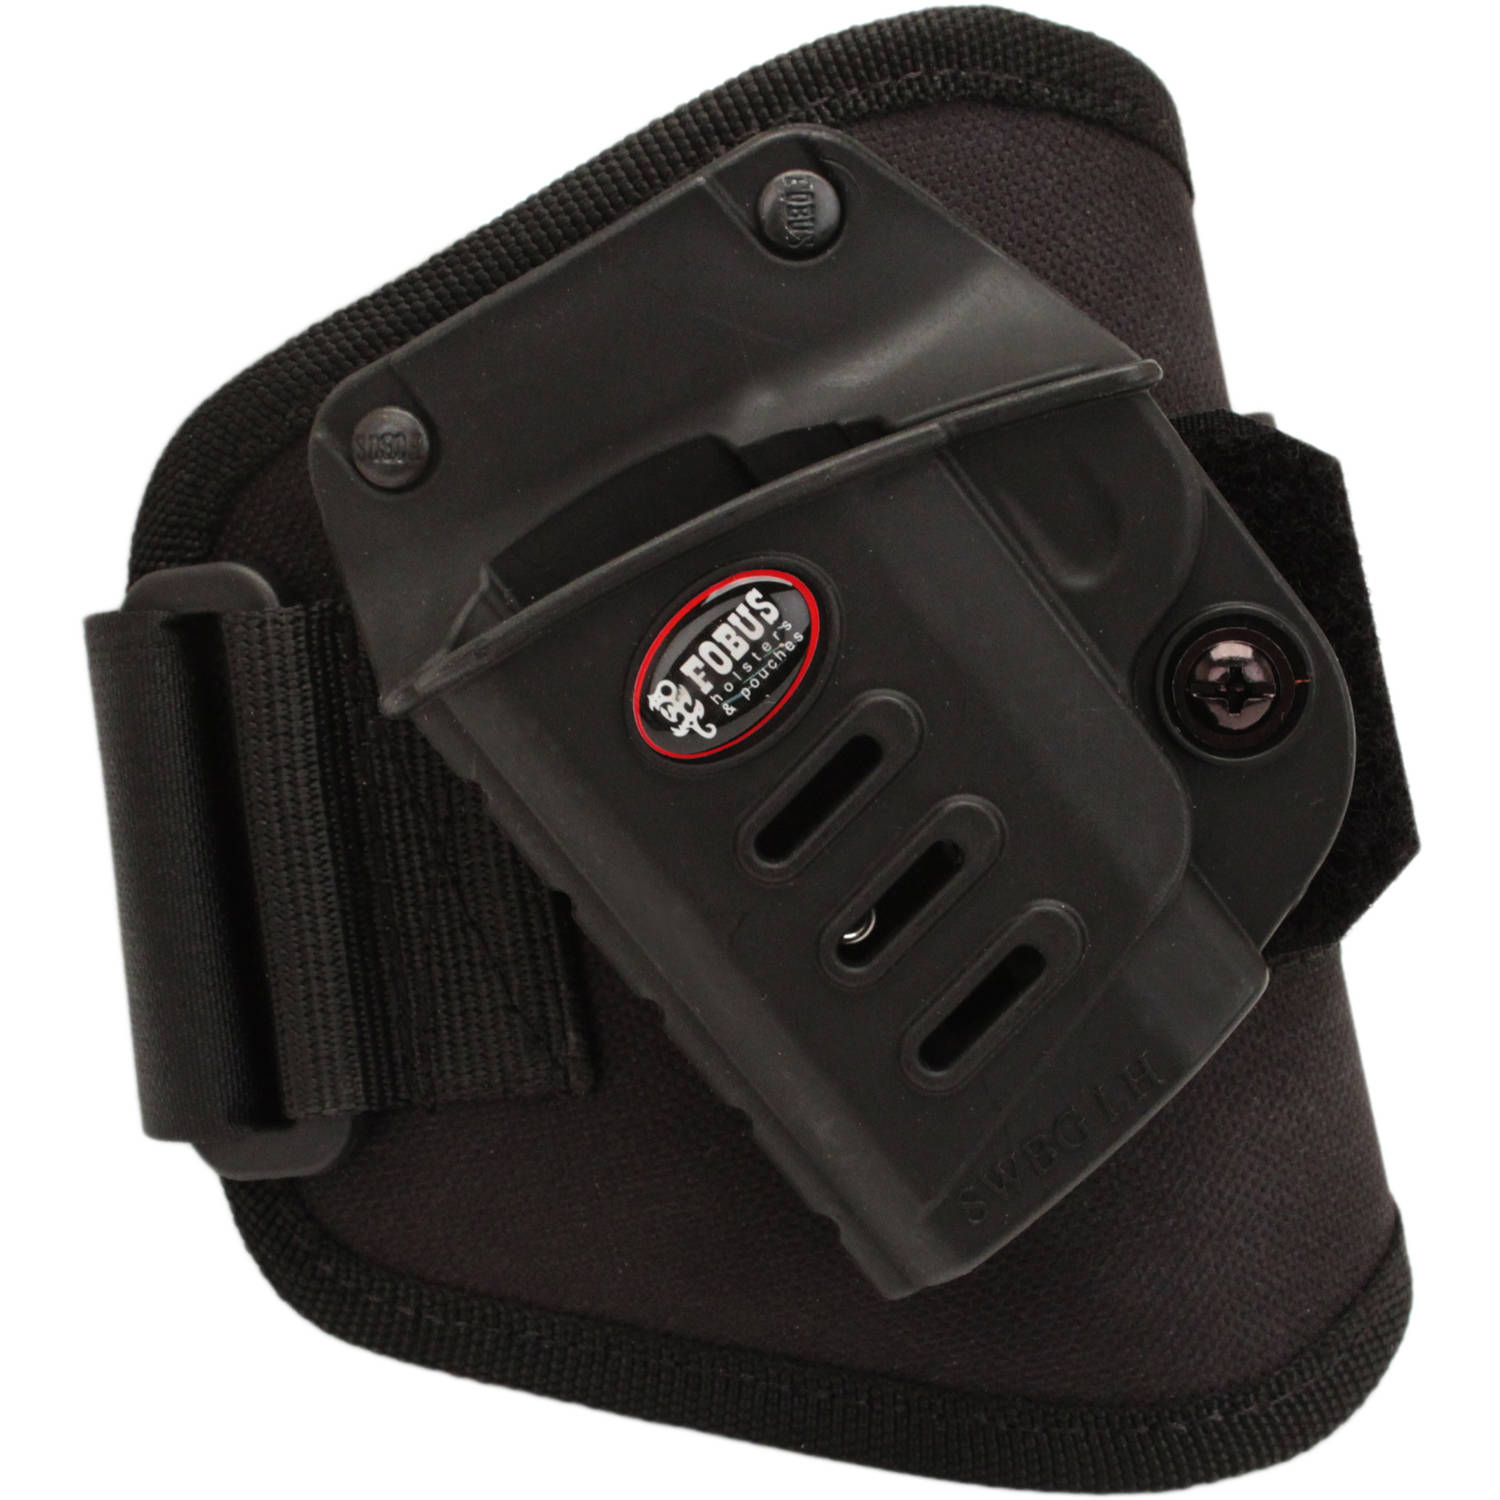 Fobus Body Guard 380 Holster Left Hand Ankle by Fobus